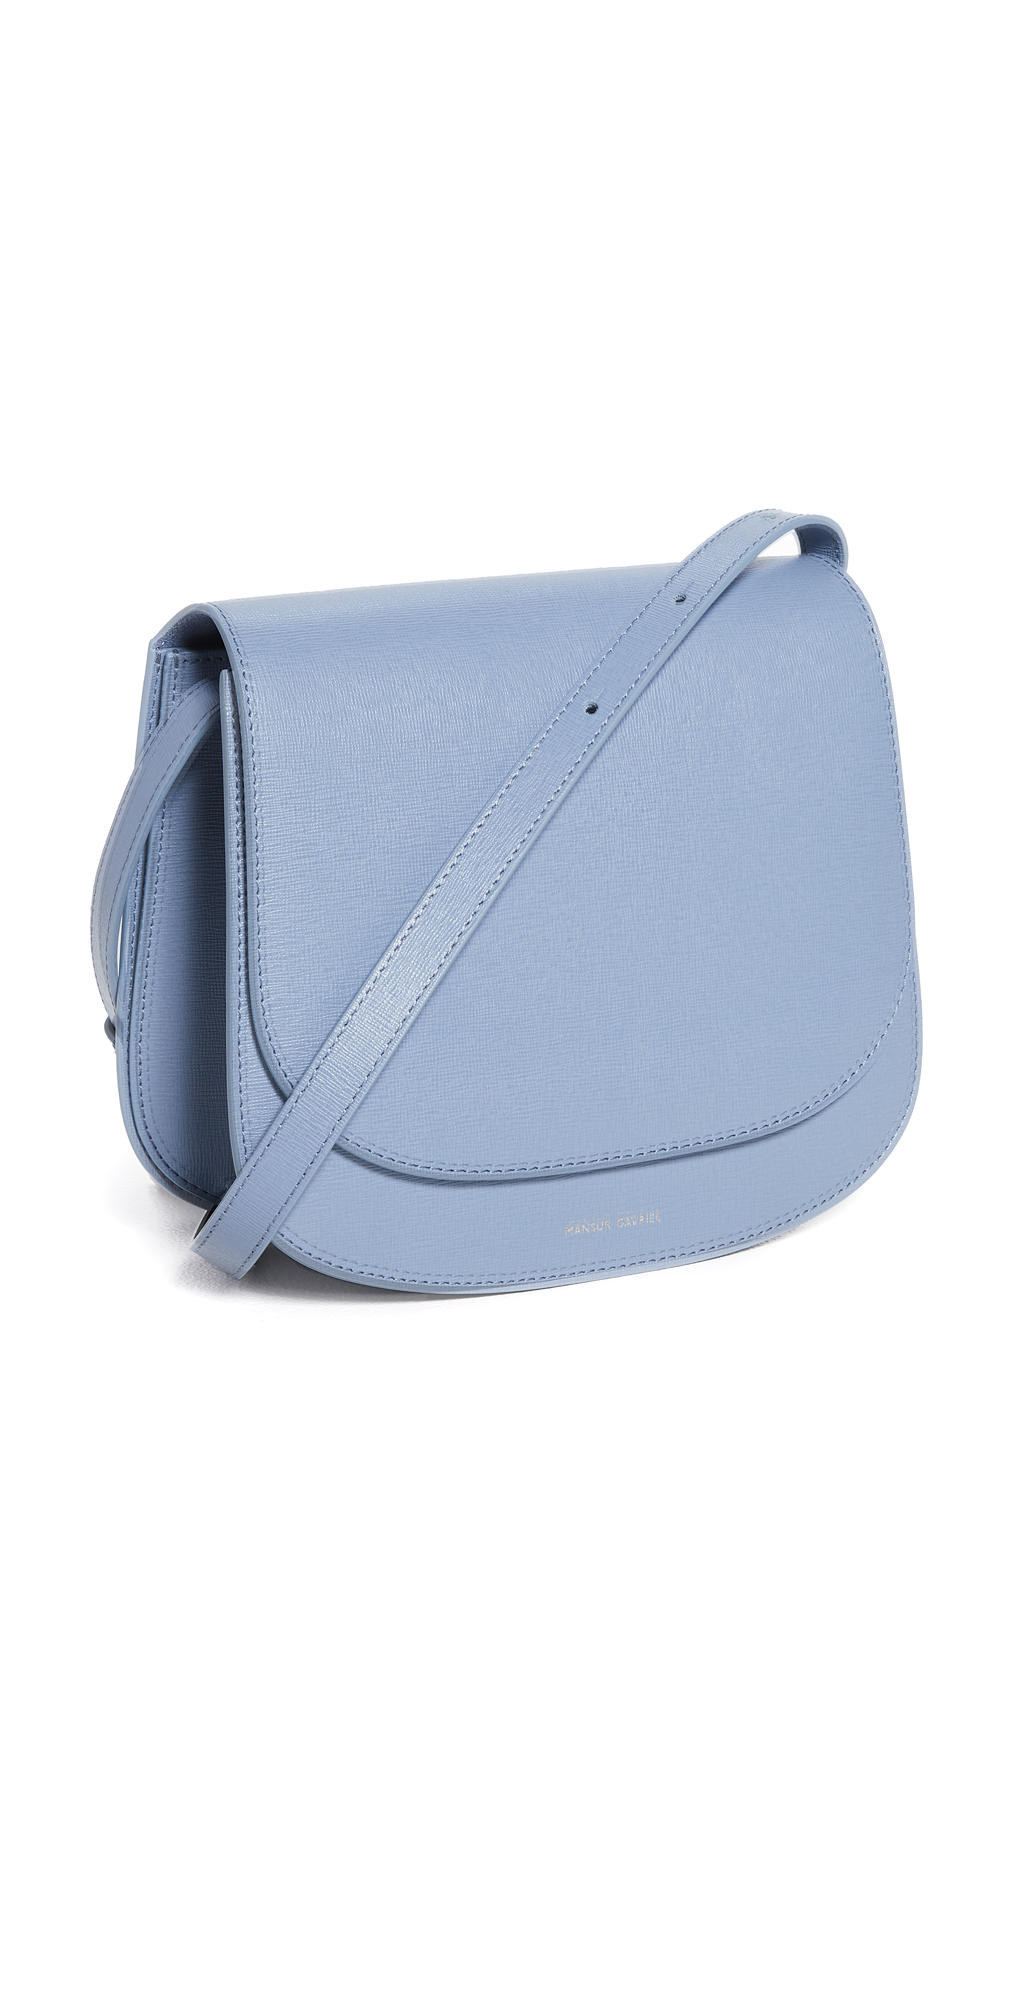 Mansur Gavriel Classic Shoulder Bag